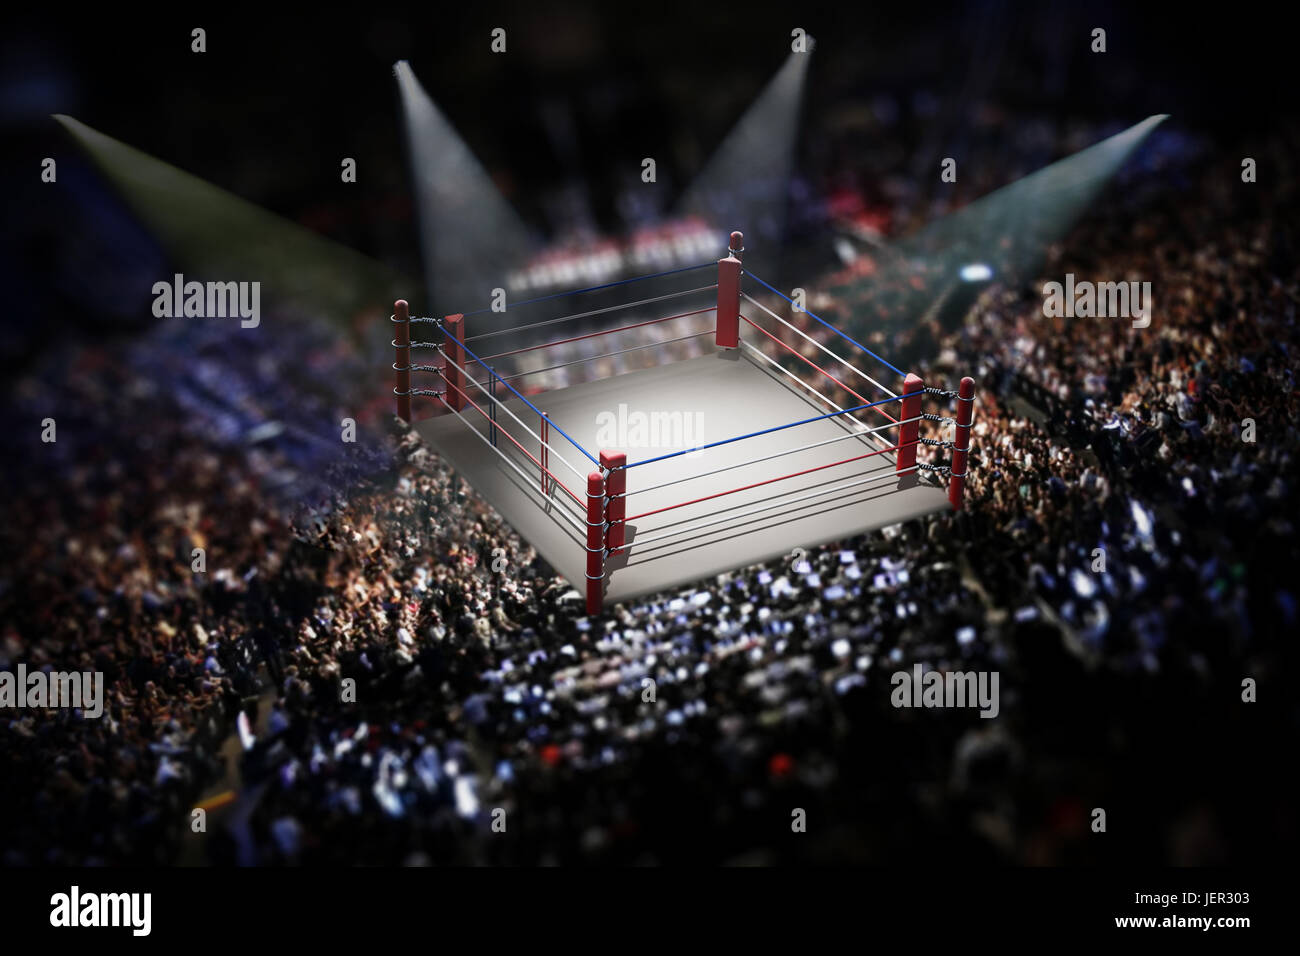 Empty boxing ring surrounded with spectators. 3D illustration. - Stock Image